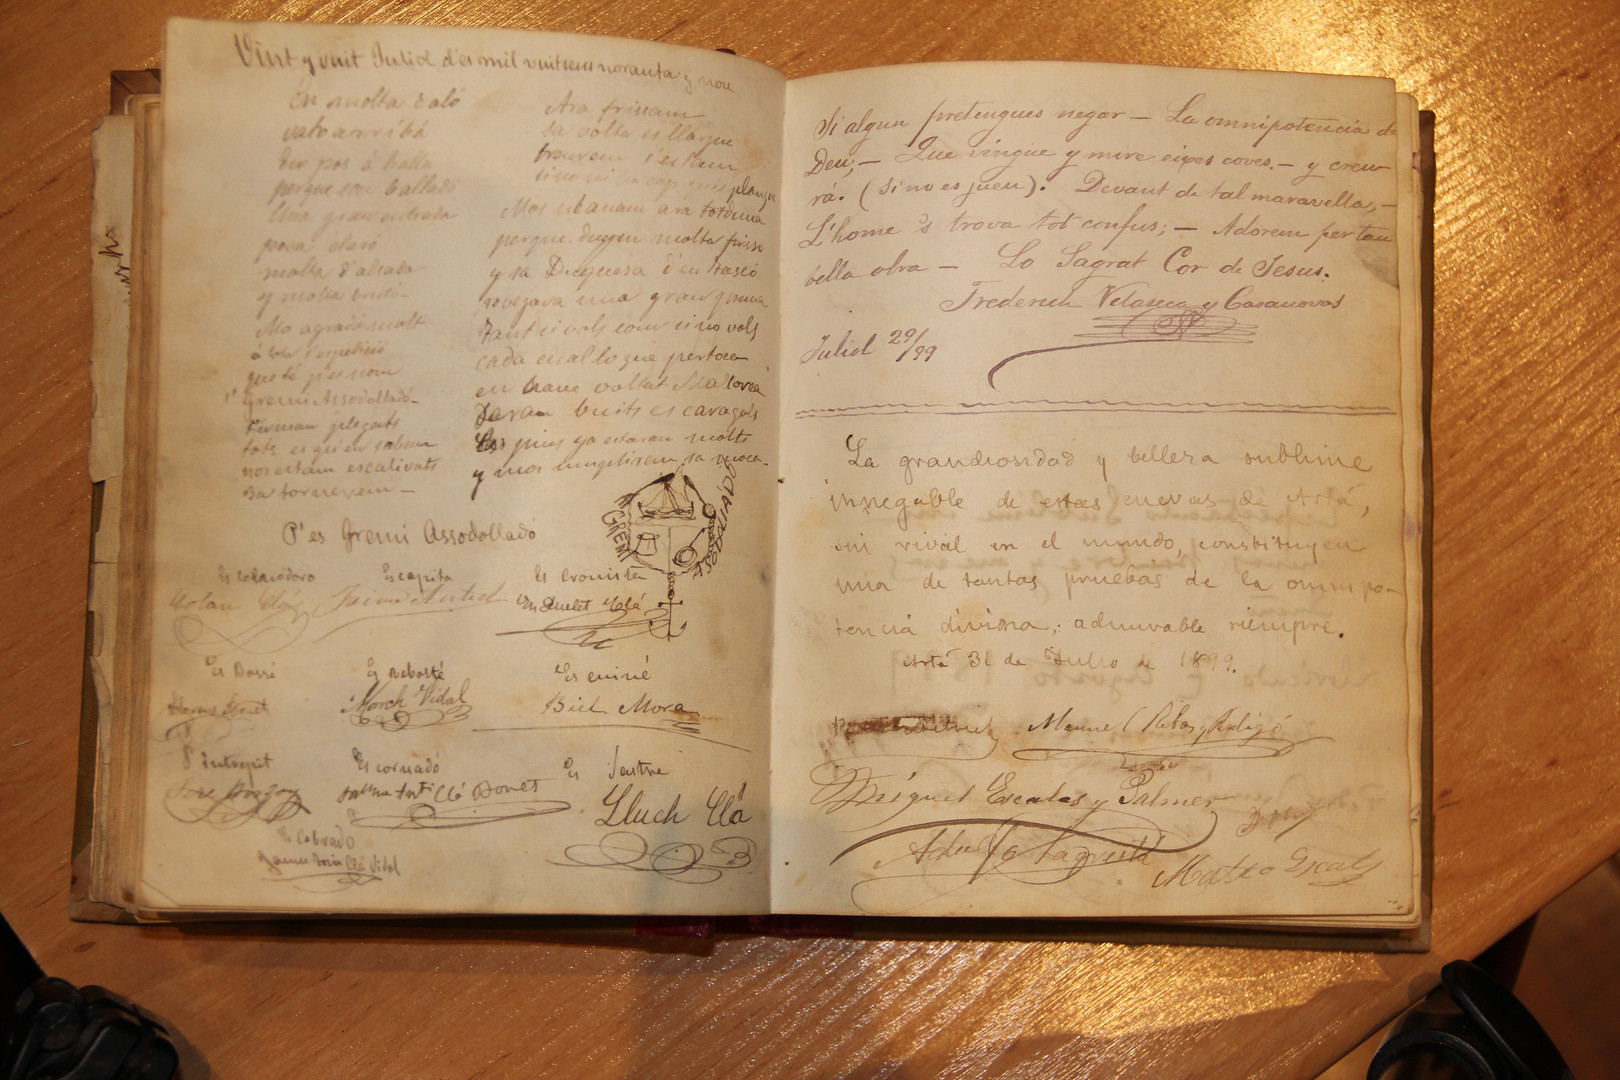 """On the left-hand page, glosa [a type of popular poetry] by the purser, Llorenç Bonet, and signatures of the rest of the expeditioners on the San Miguel in the volume of the Caves of Artà visitors' book corresponding to the period when they were visited by the expeditioners on the """"San Miguel"""" (courtesy of the Caves of Artà)."""